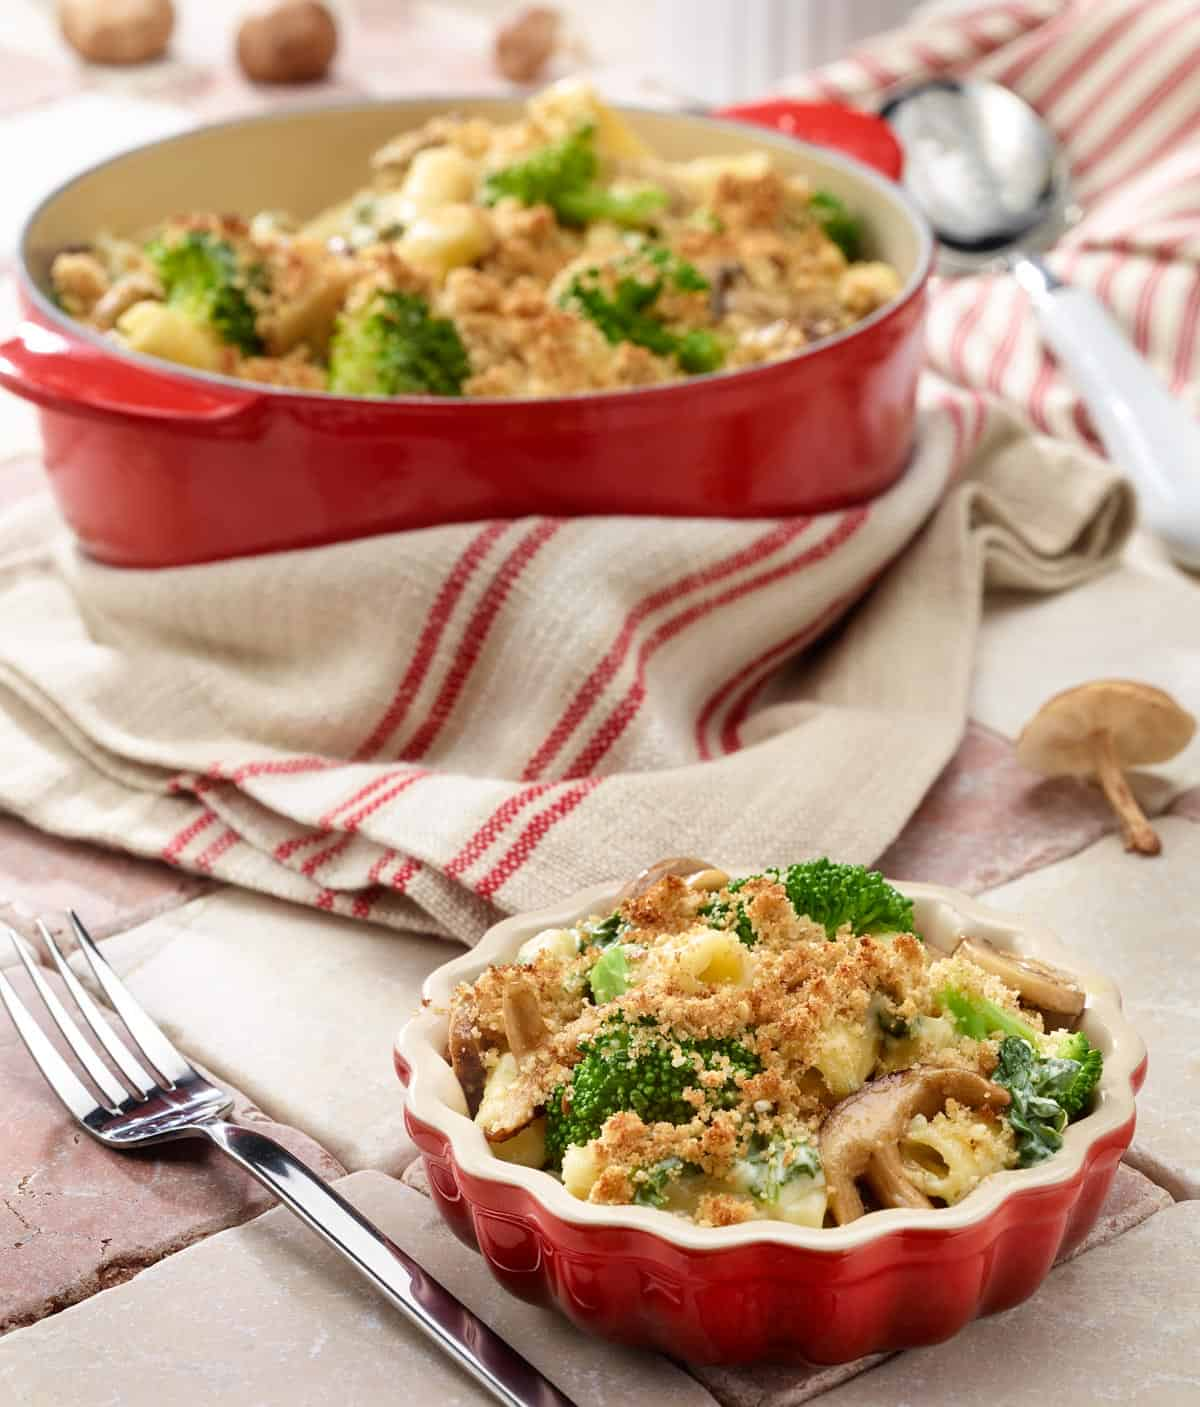 Small dish of broccoli, mushroom, spinach and cheese pasta with larger pan in background